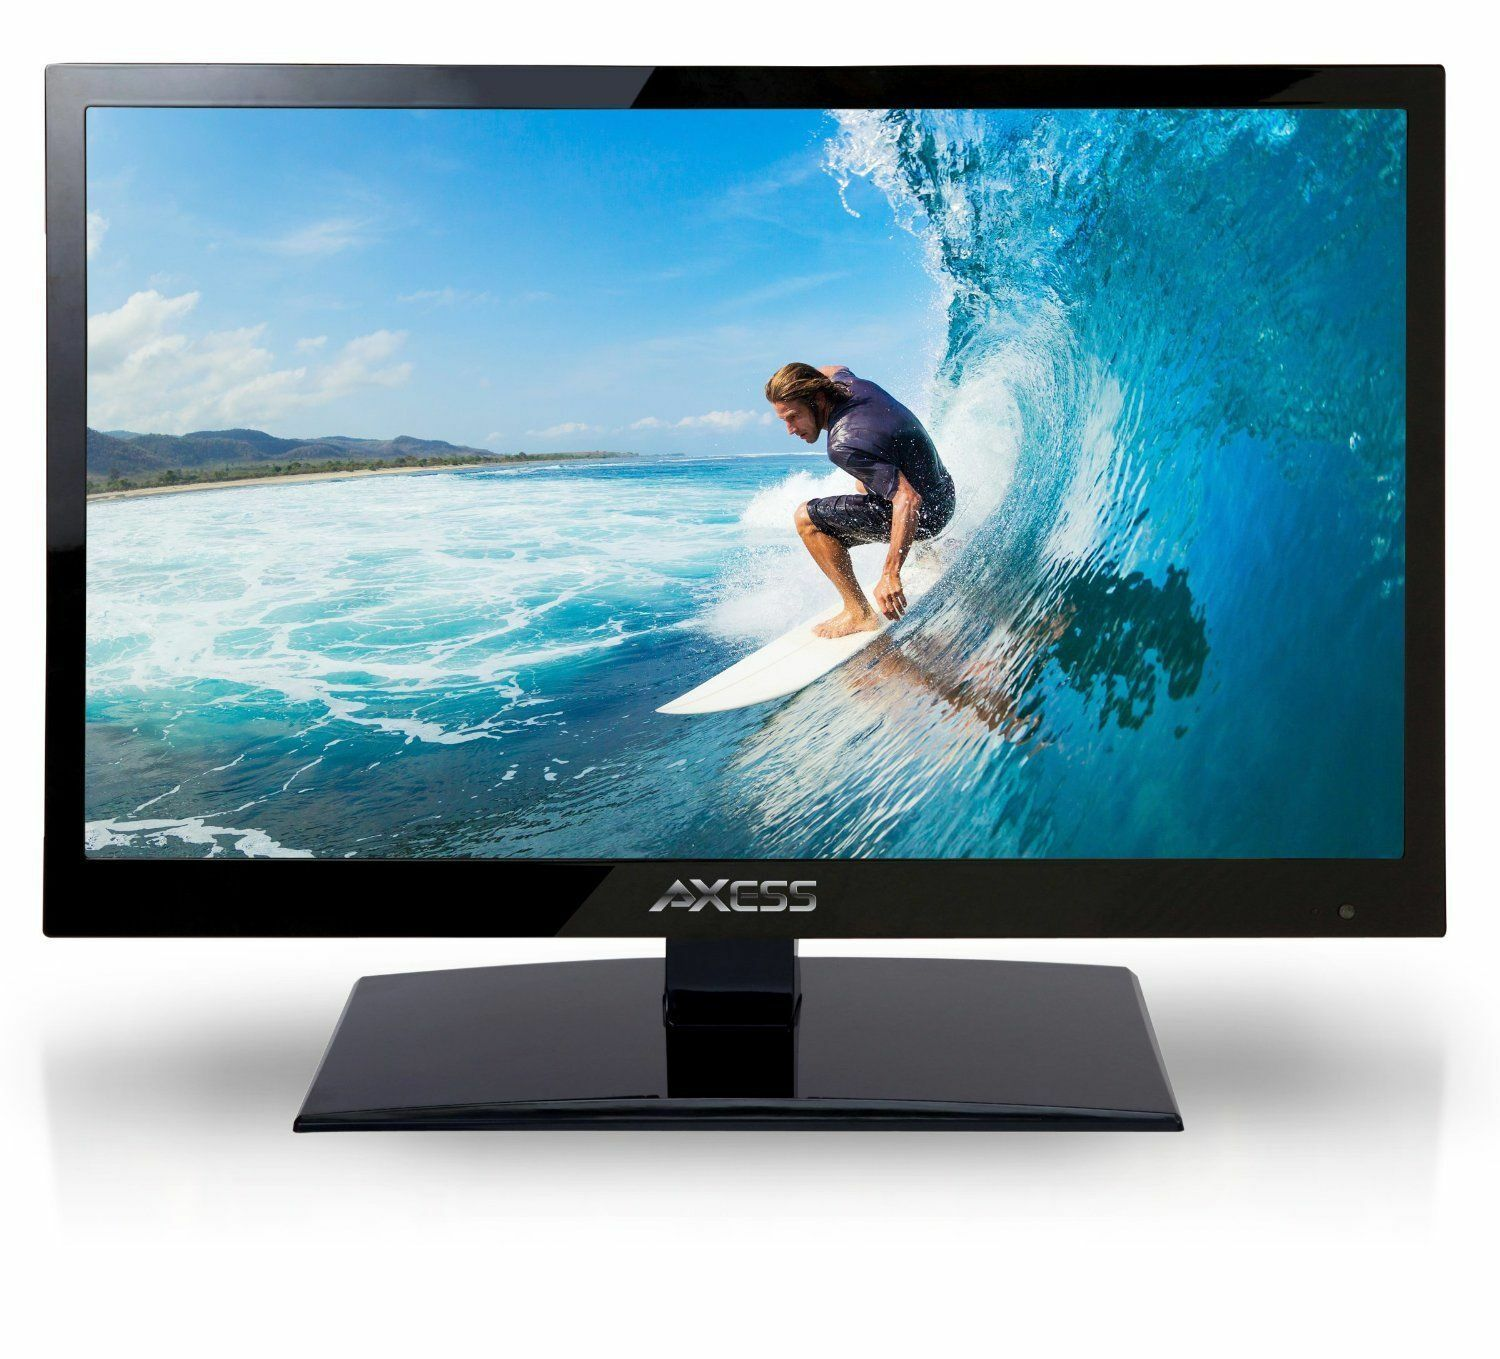 """AXESS TV1703-16 16"""" LED TV with Full HD Display, Includes HDMI/USB Inputs AC/DC"""